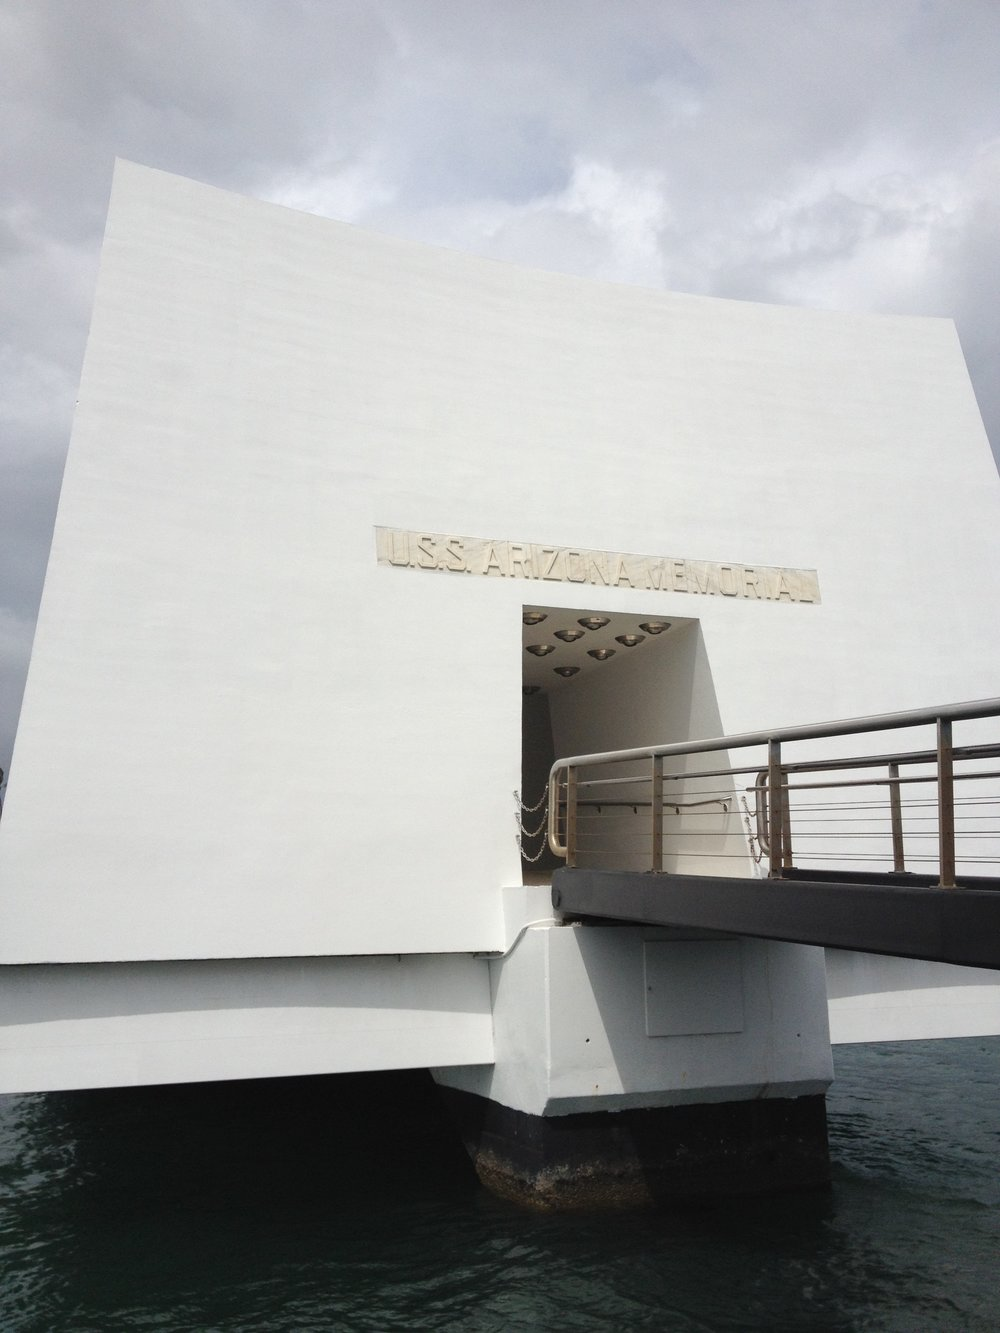 USS Arizona Memorial, photo by Derek Wright.